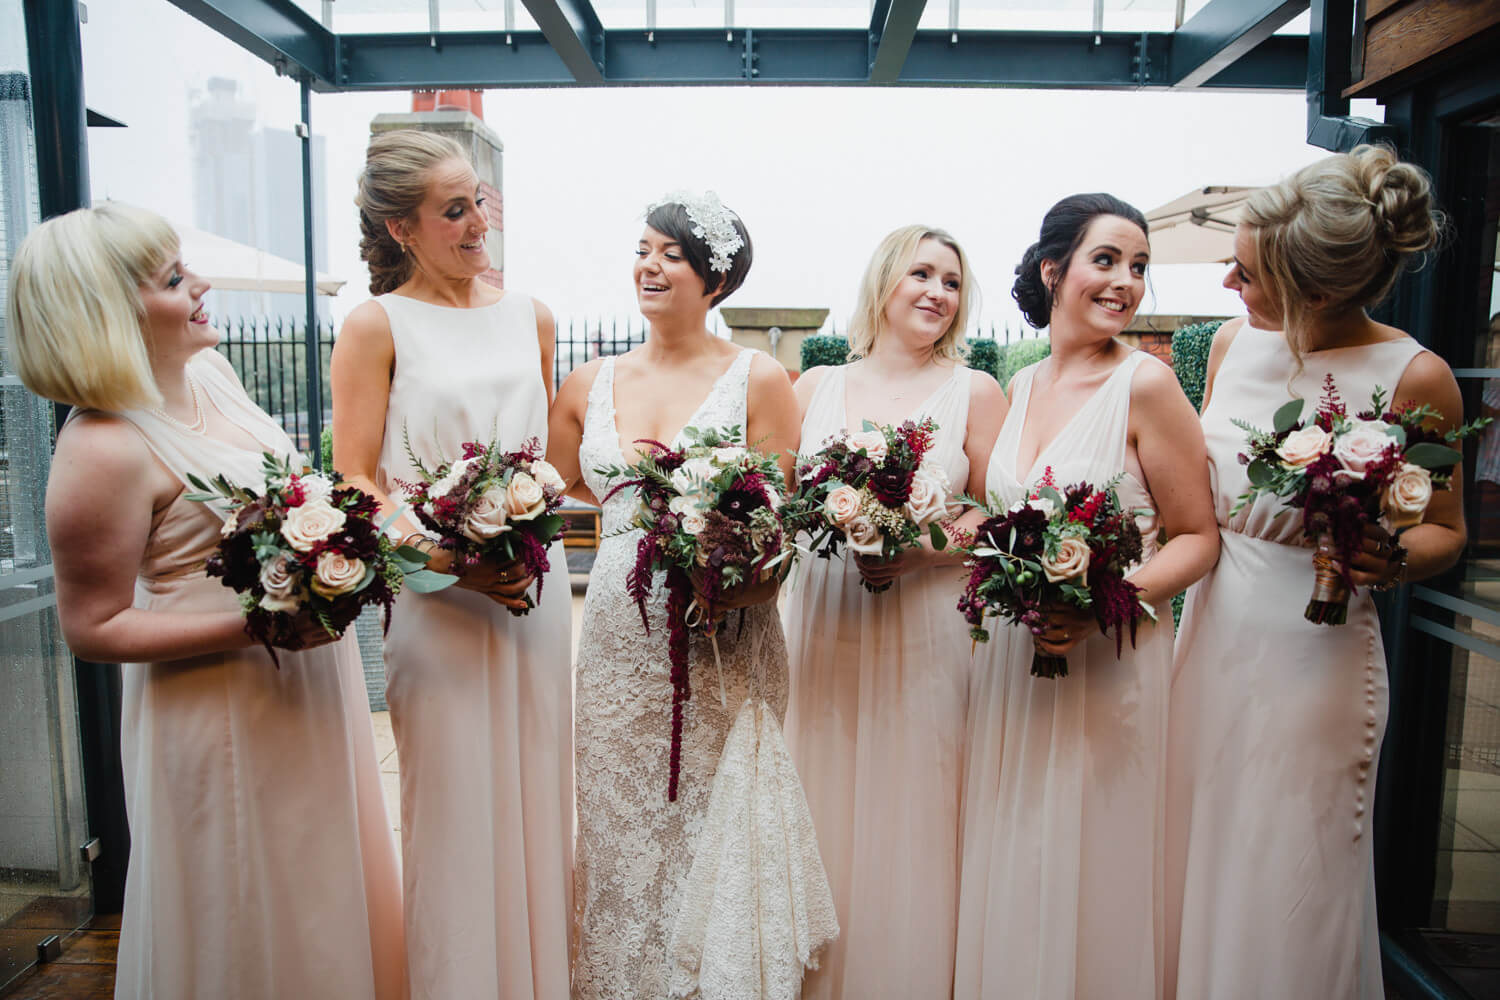 bridesmaids all holding bouquets while looking at camera for great john street hotel group photograph